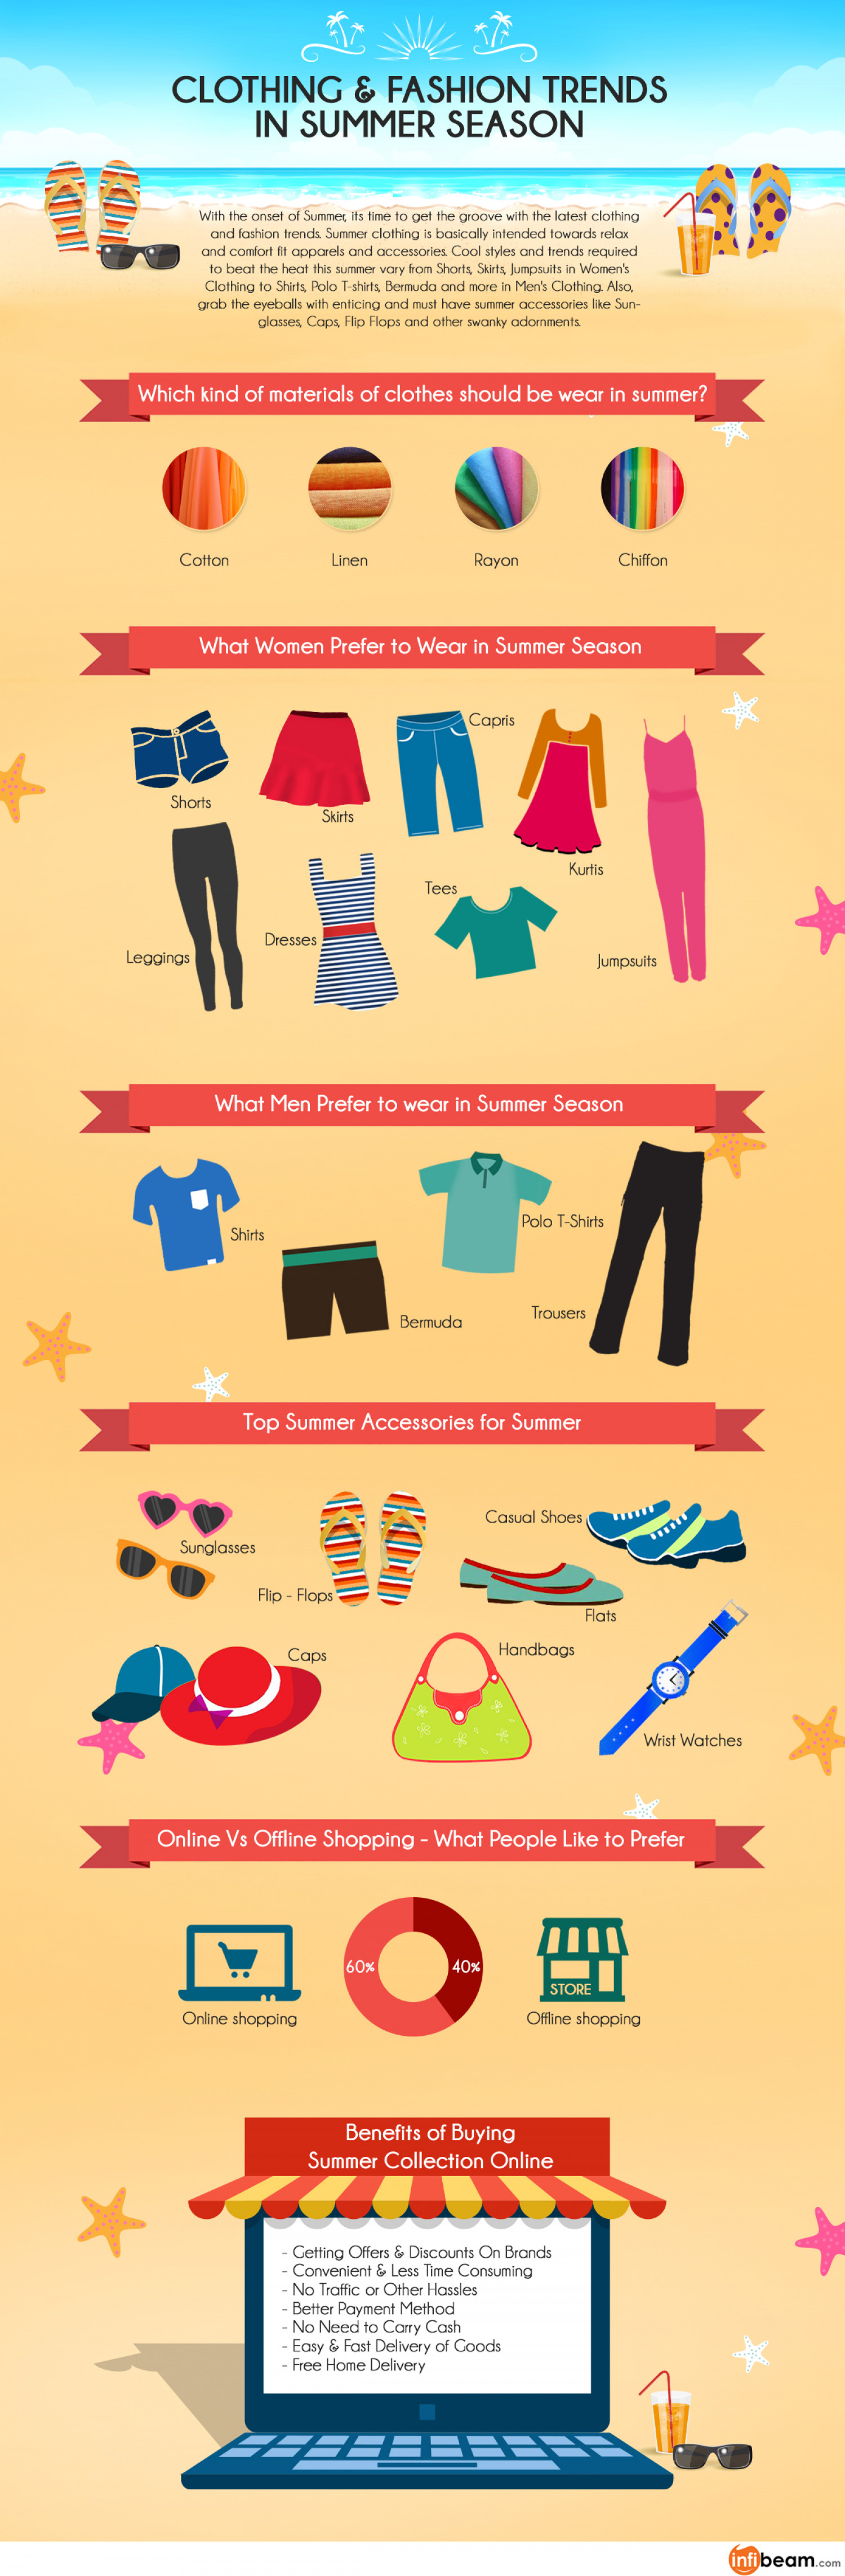 Clothing fashion trends in summer season visual clothing fashion trends in summer season infographic fandeluxe Choice Image